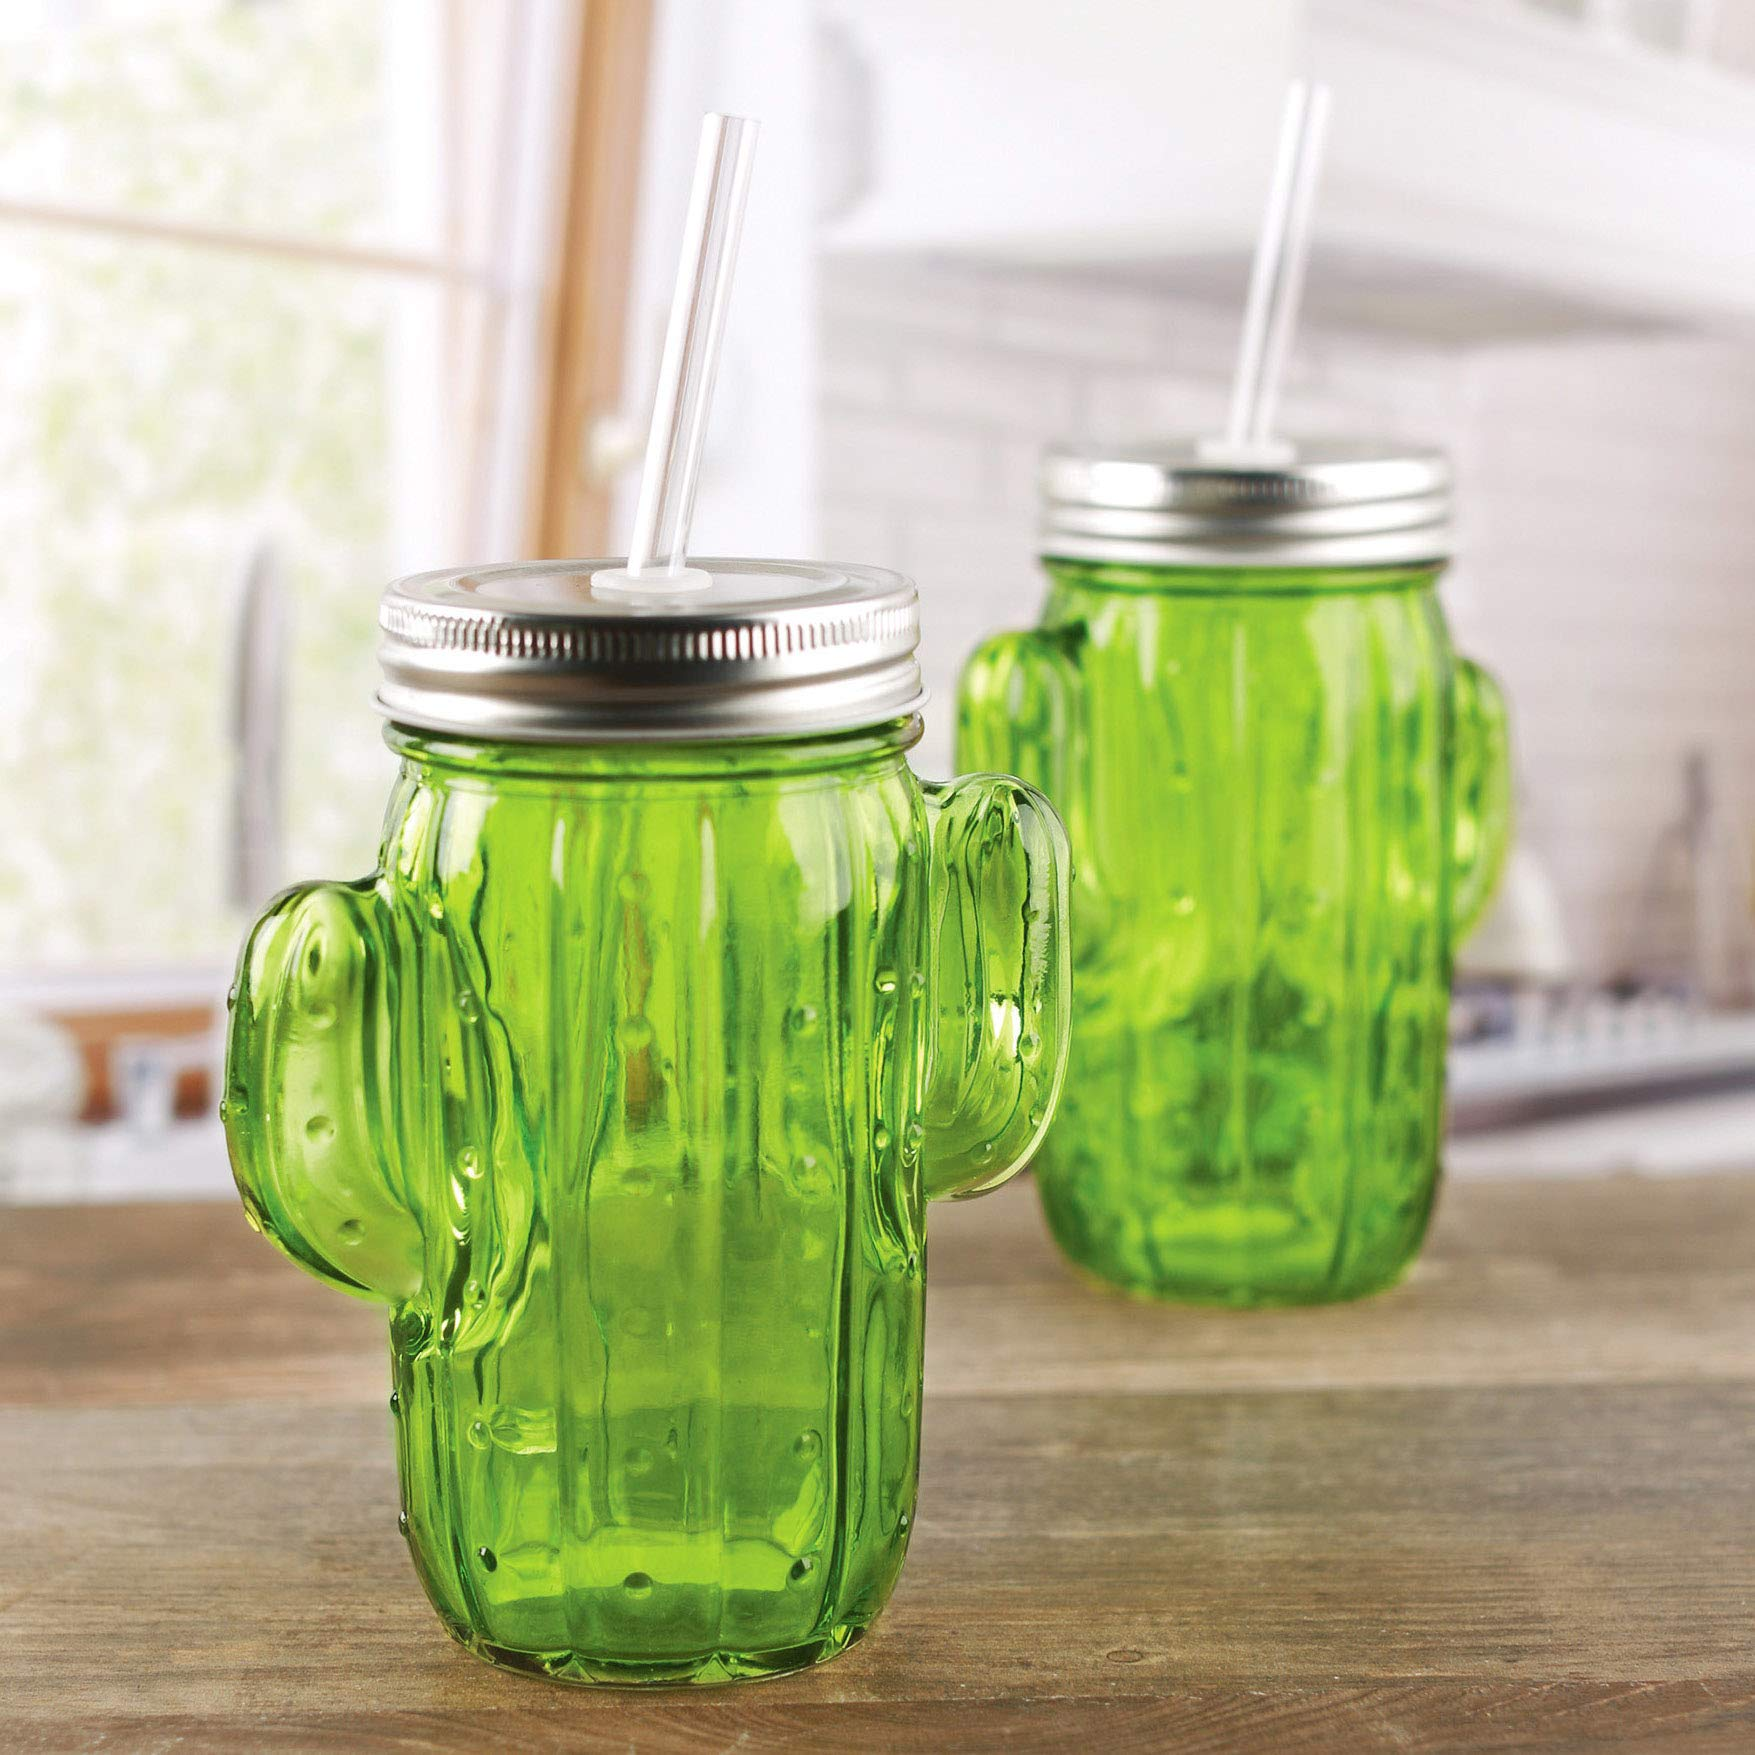 Circleware Green Glass Cactus Mason Sipper with Metal Lid and Straw, Set of 4, 15.5 Oz by Circleware (Image #2)